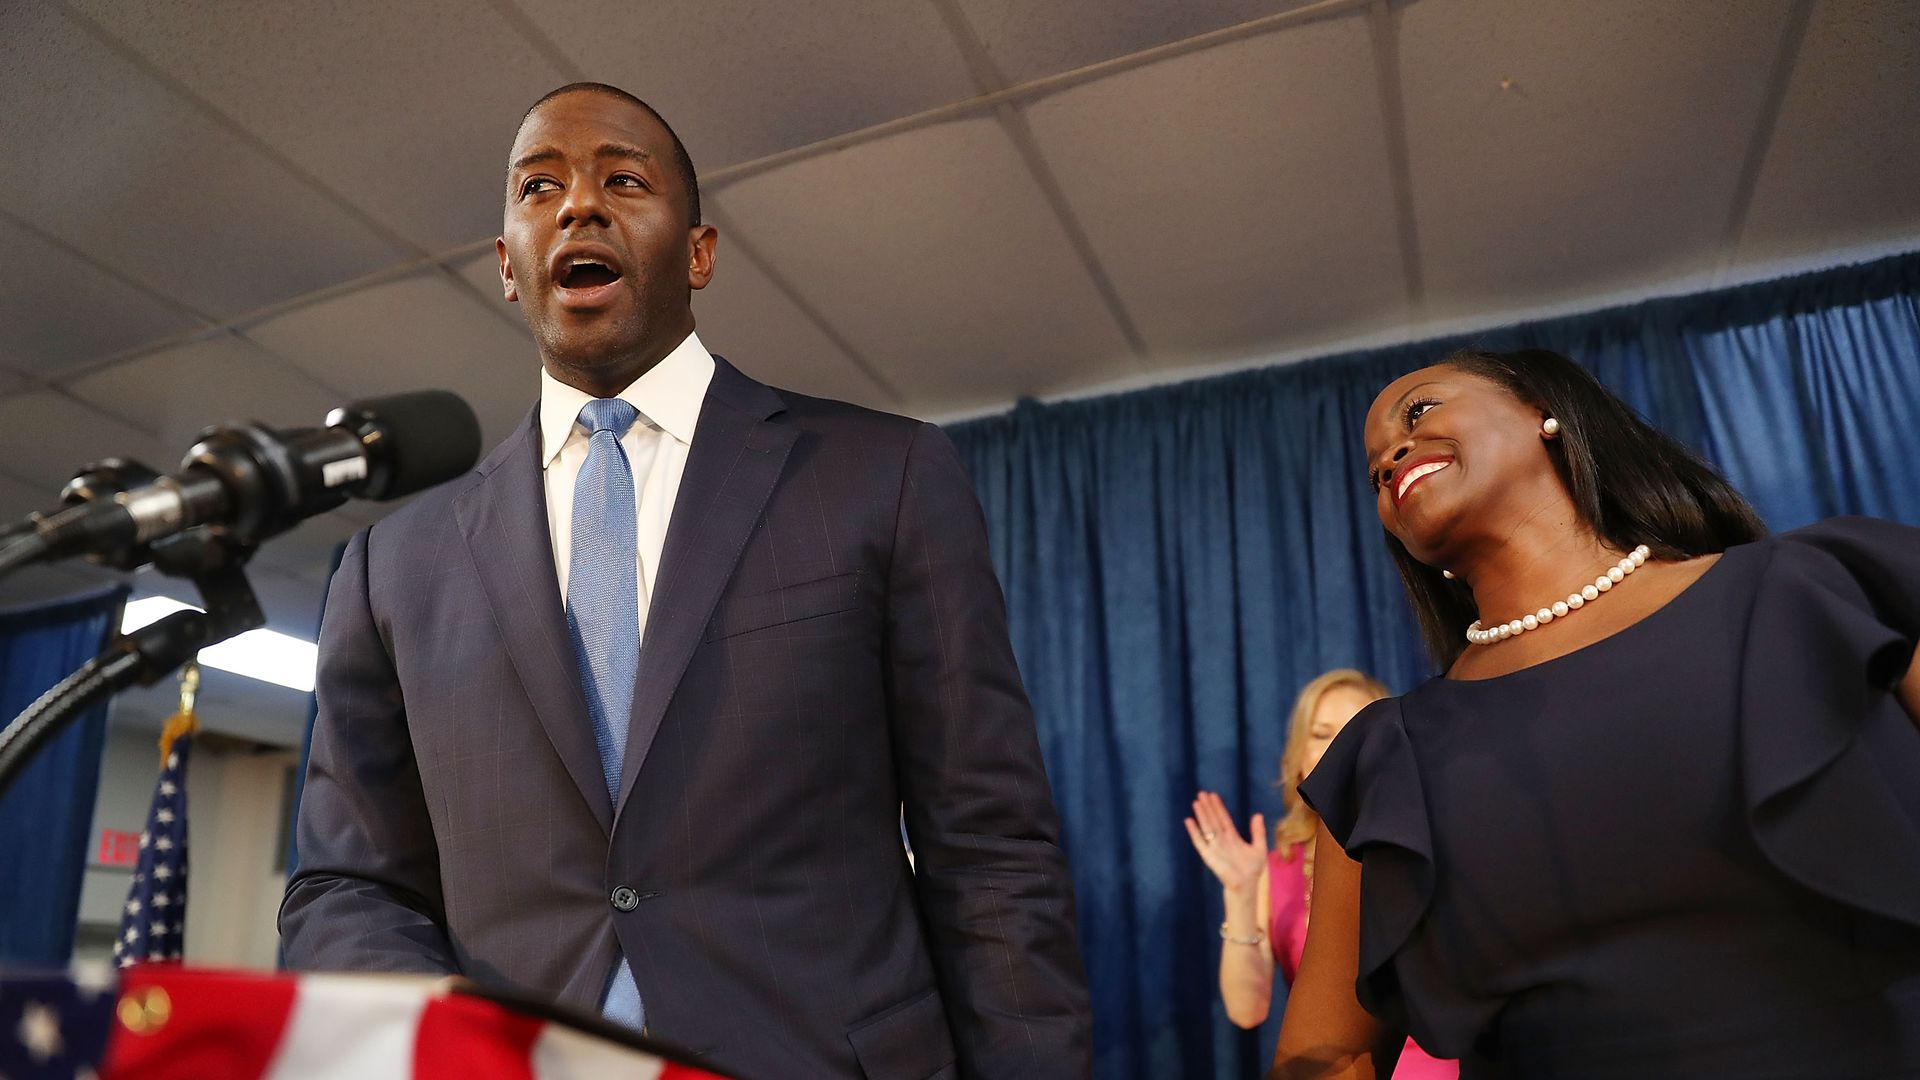 Andrew Gillum giving a speech